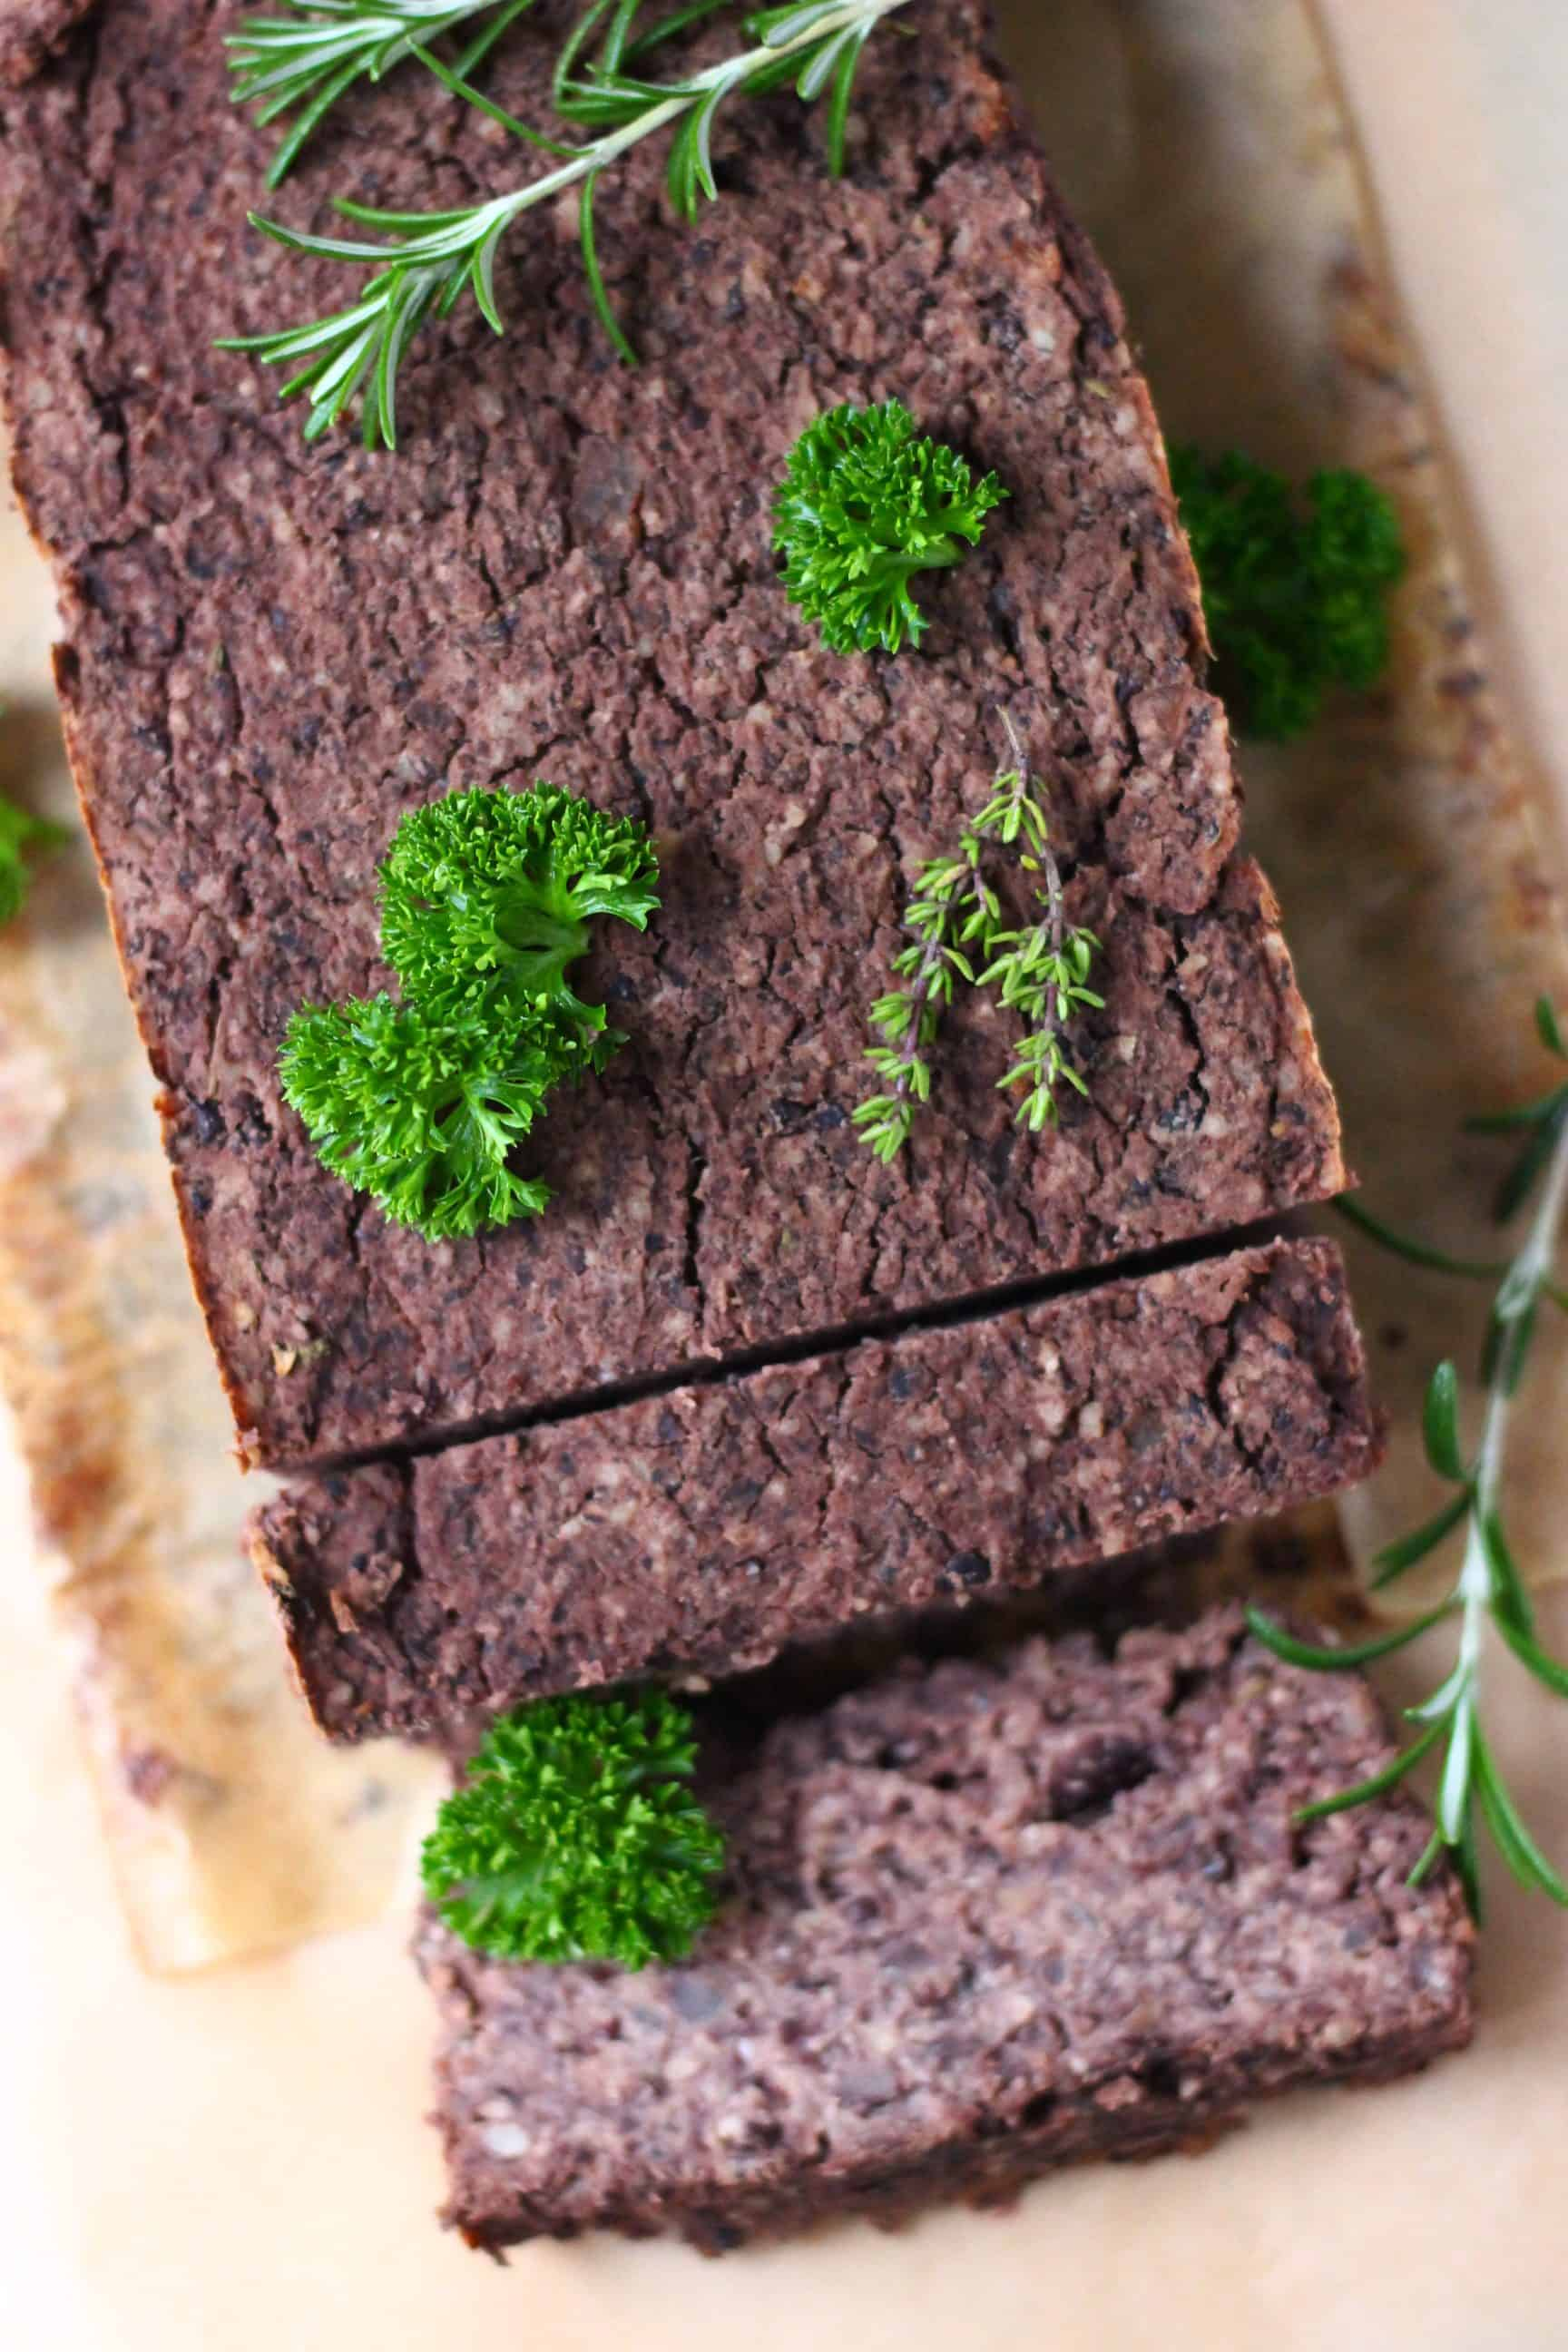 A black vegan meatloaf with two slices taken from it on a sheet of brown baking paper scattered with fresh green herbs